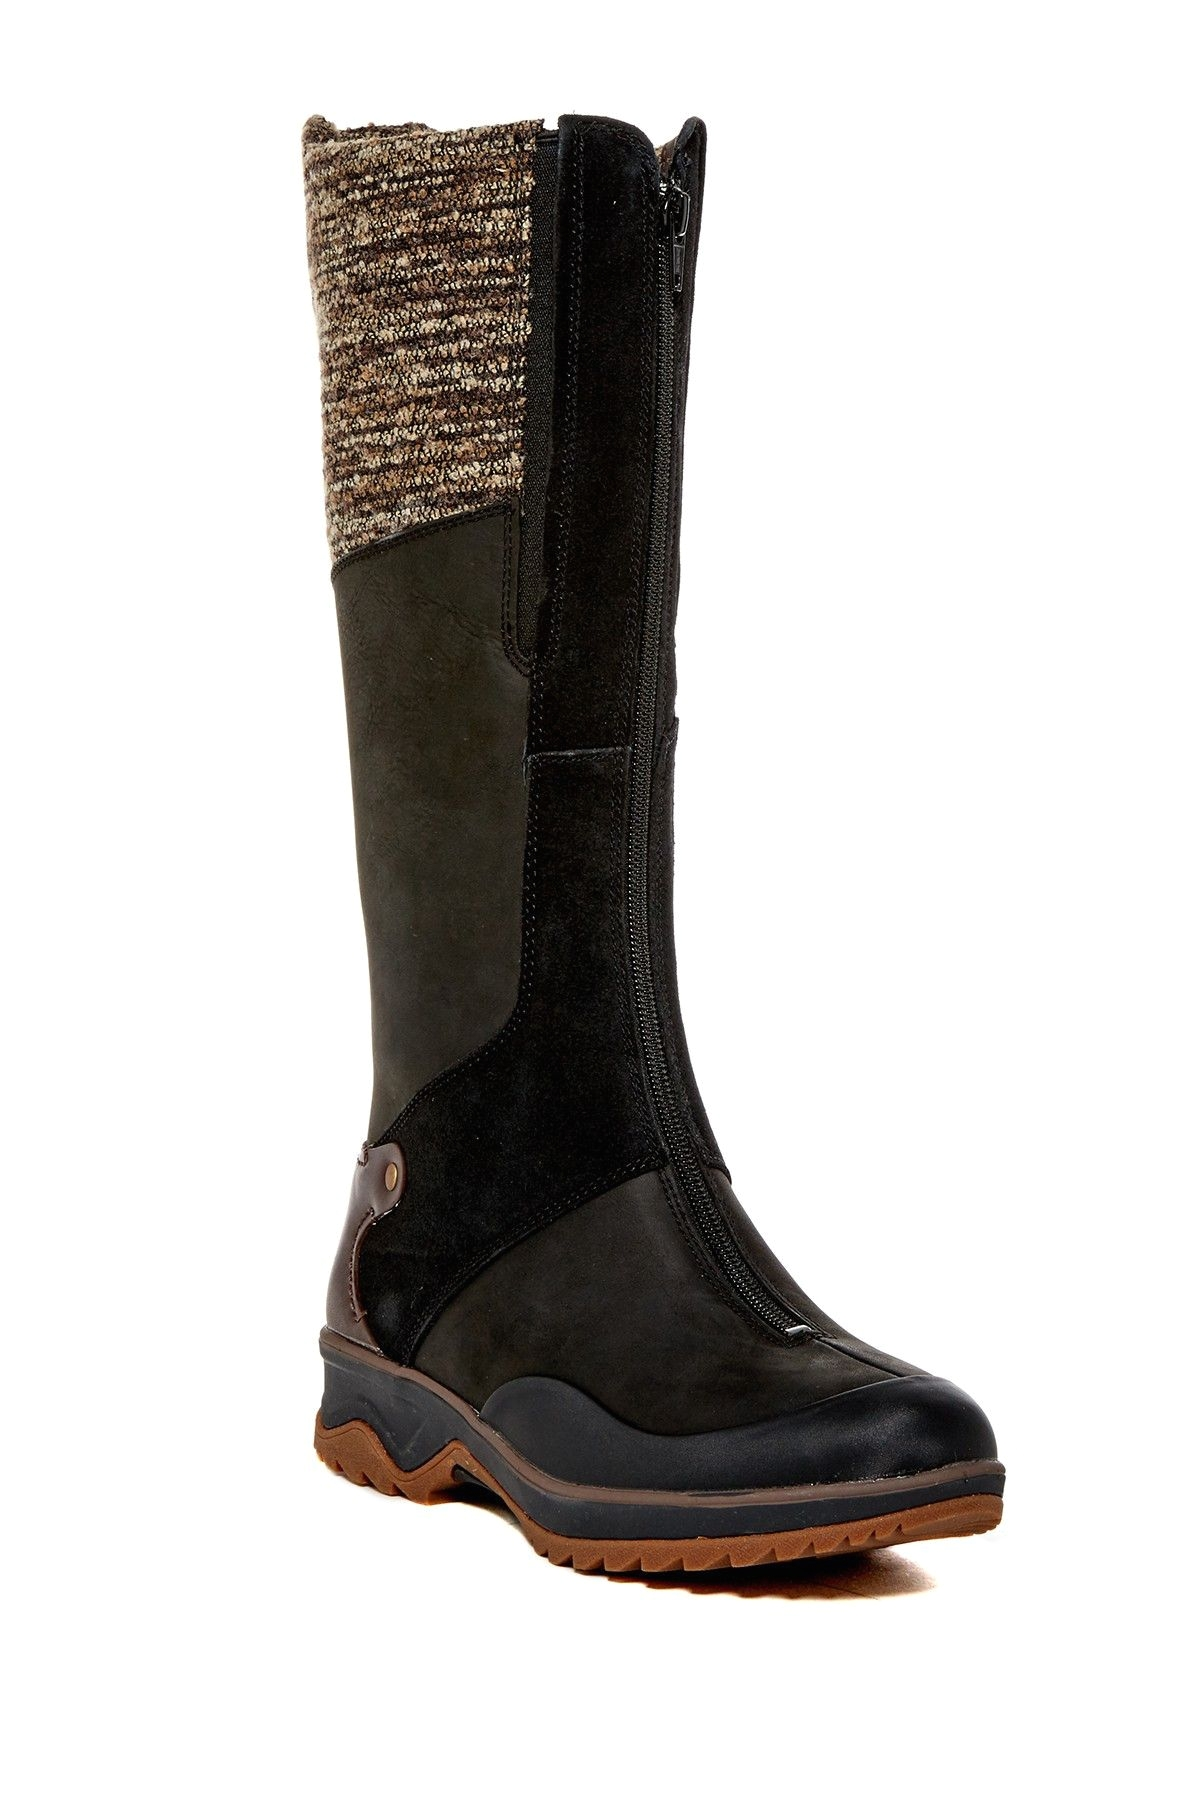 eventyr cuff waterproof boot waterproof bootsnordstrom rackcowboy